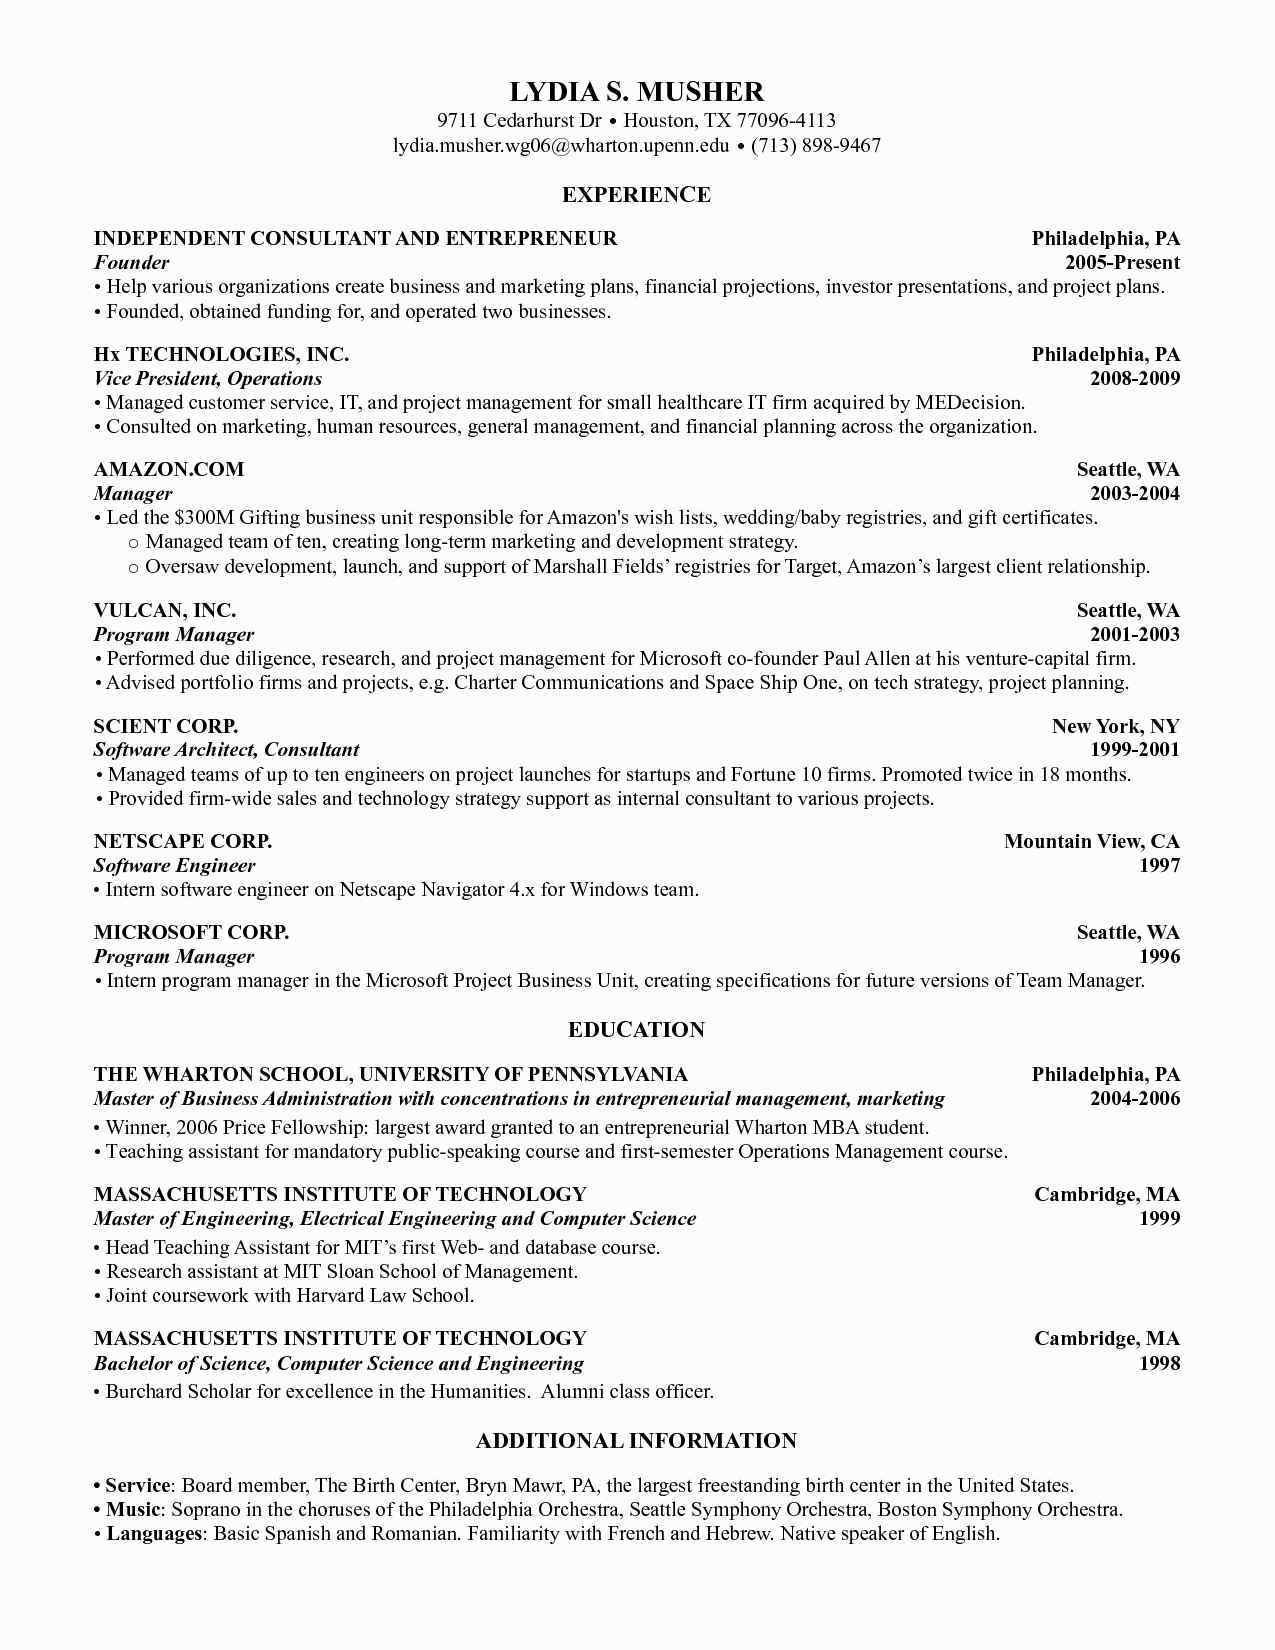 Resume Format Harvard Business School ResumeFormat